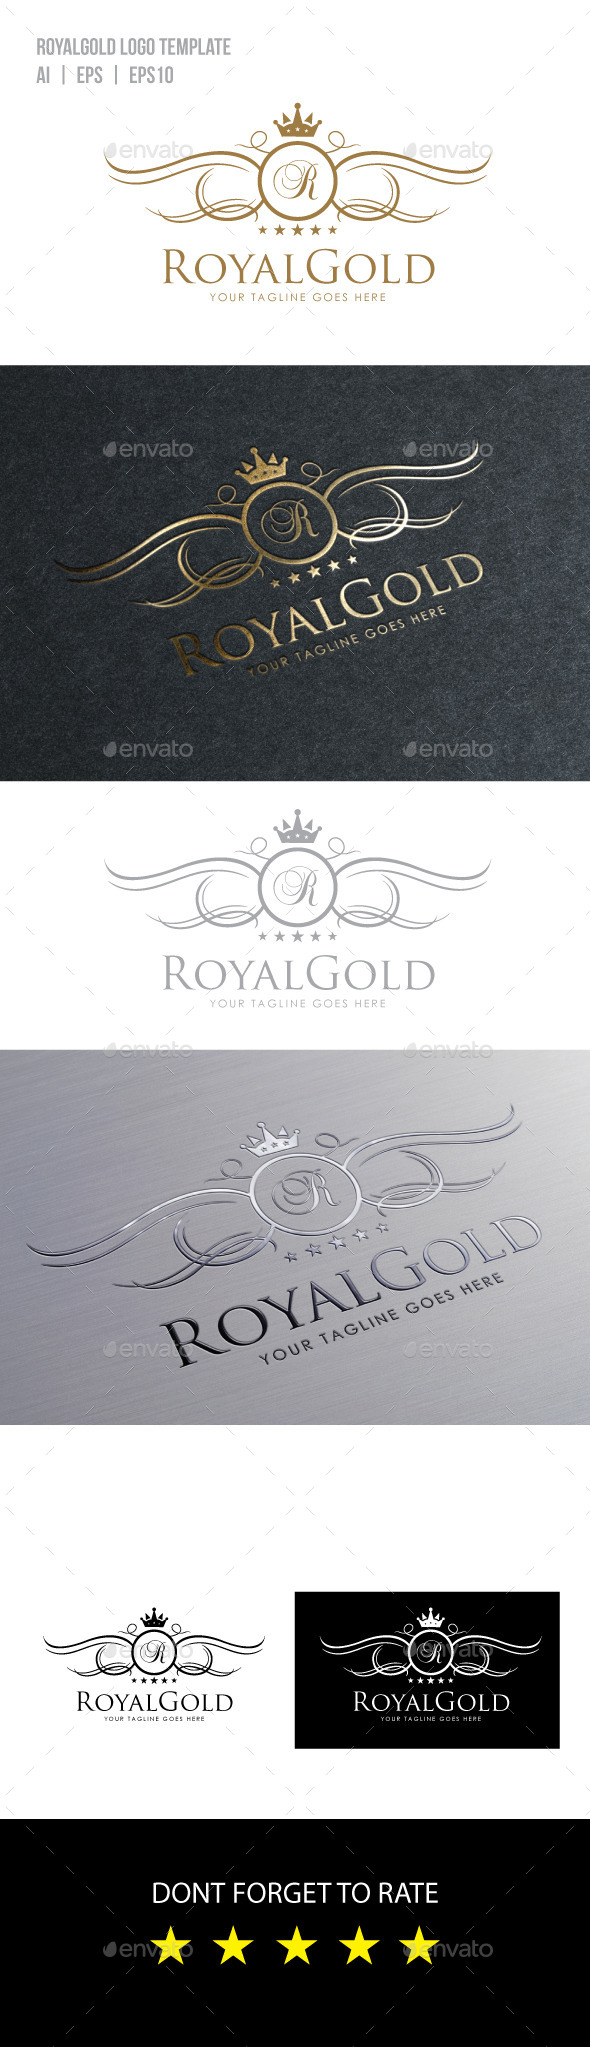 GraphicRiver Royal Gold Logo Template 10018858